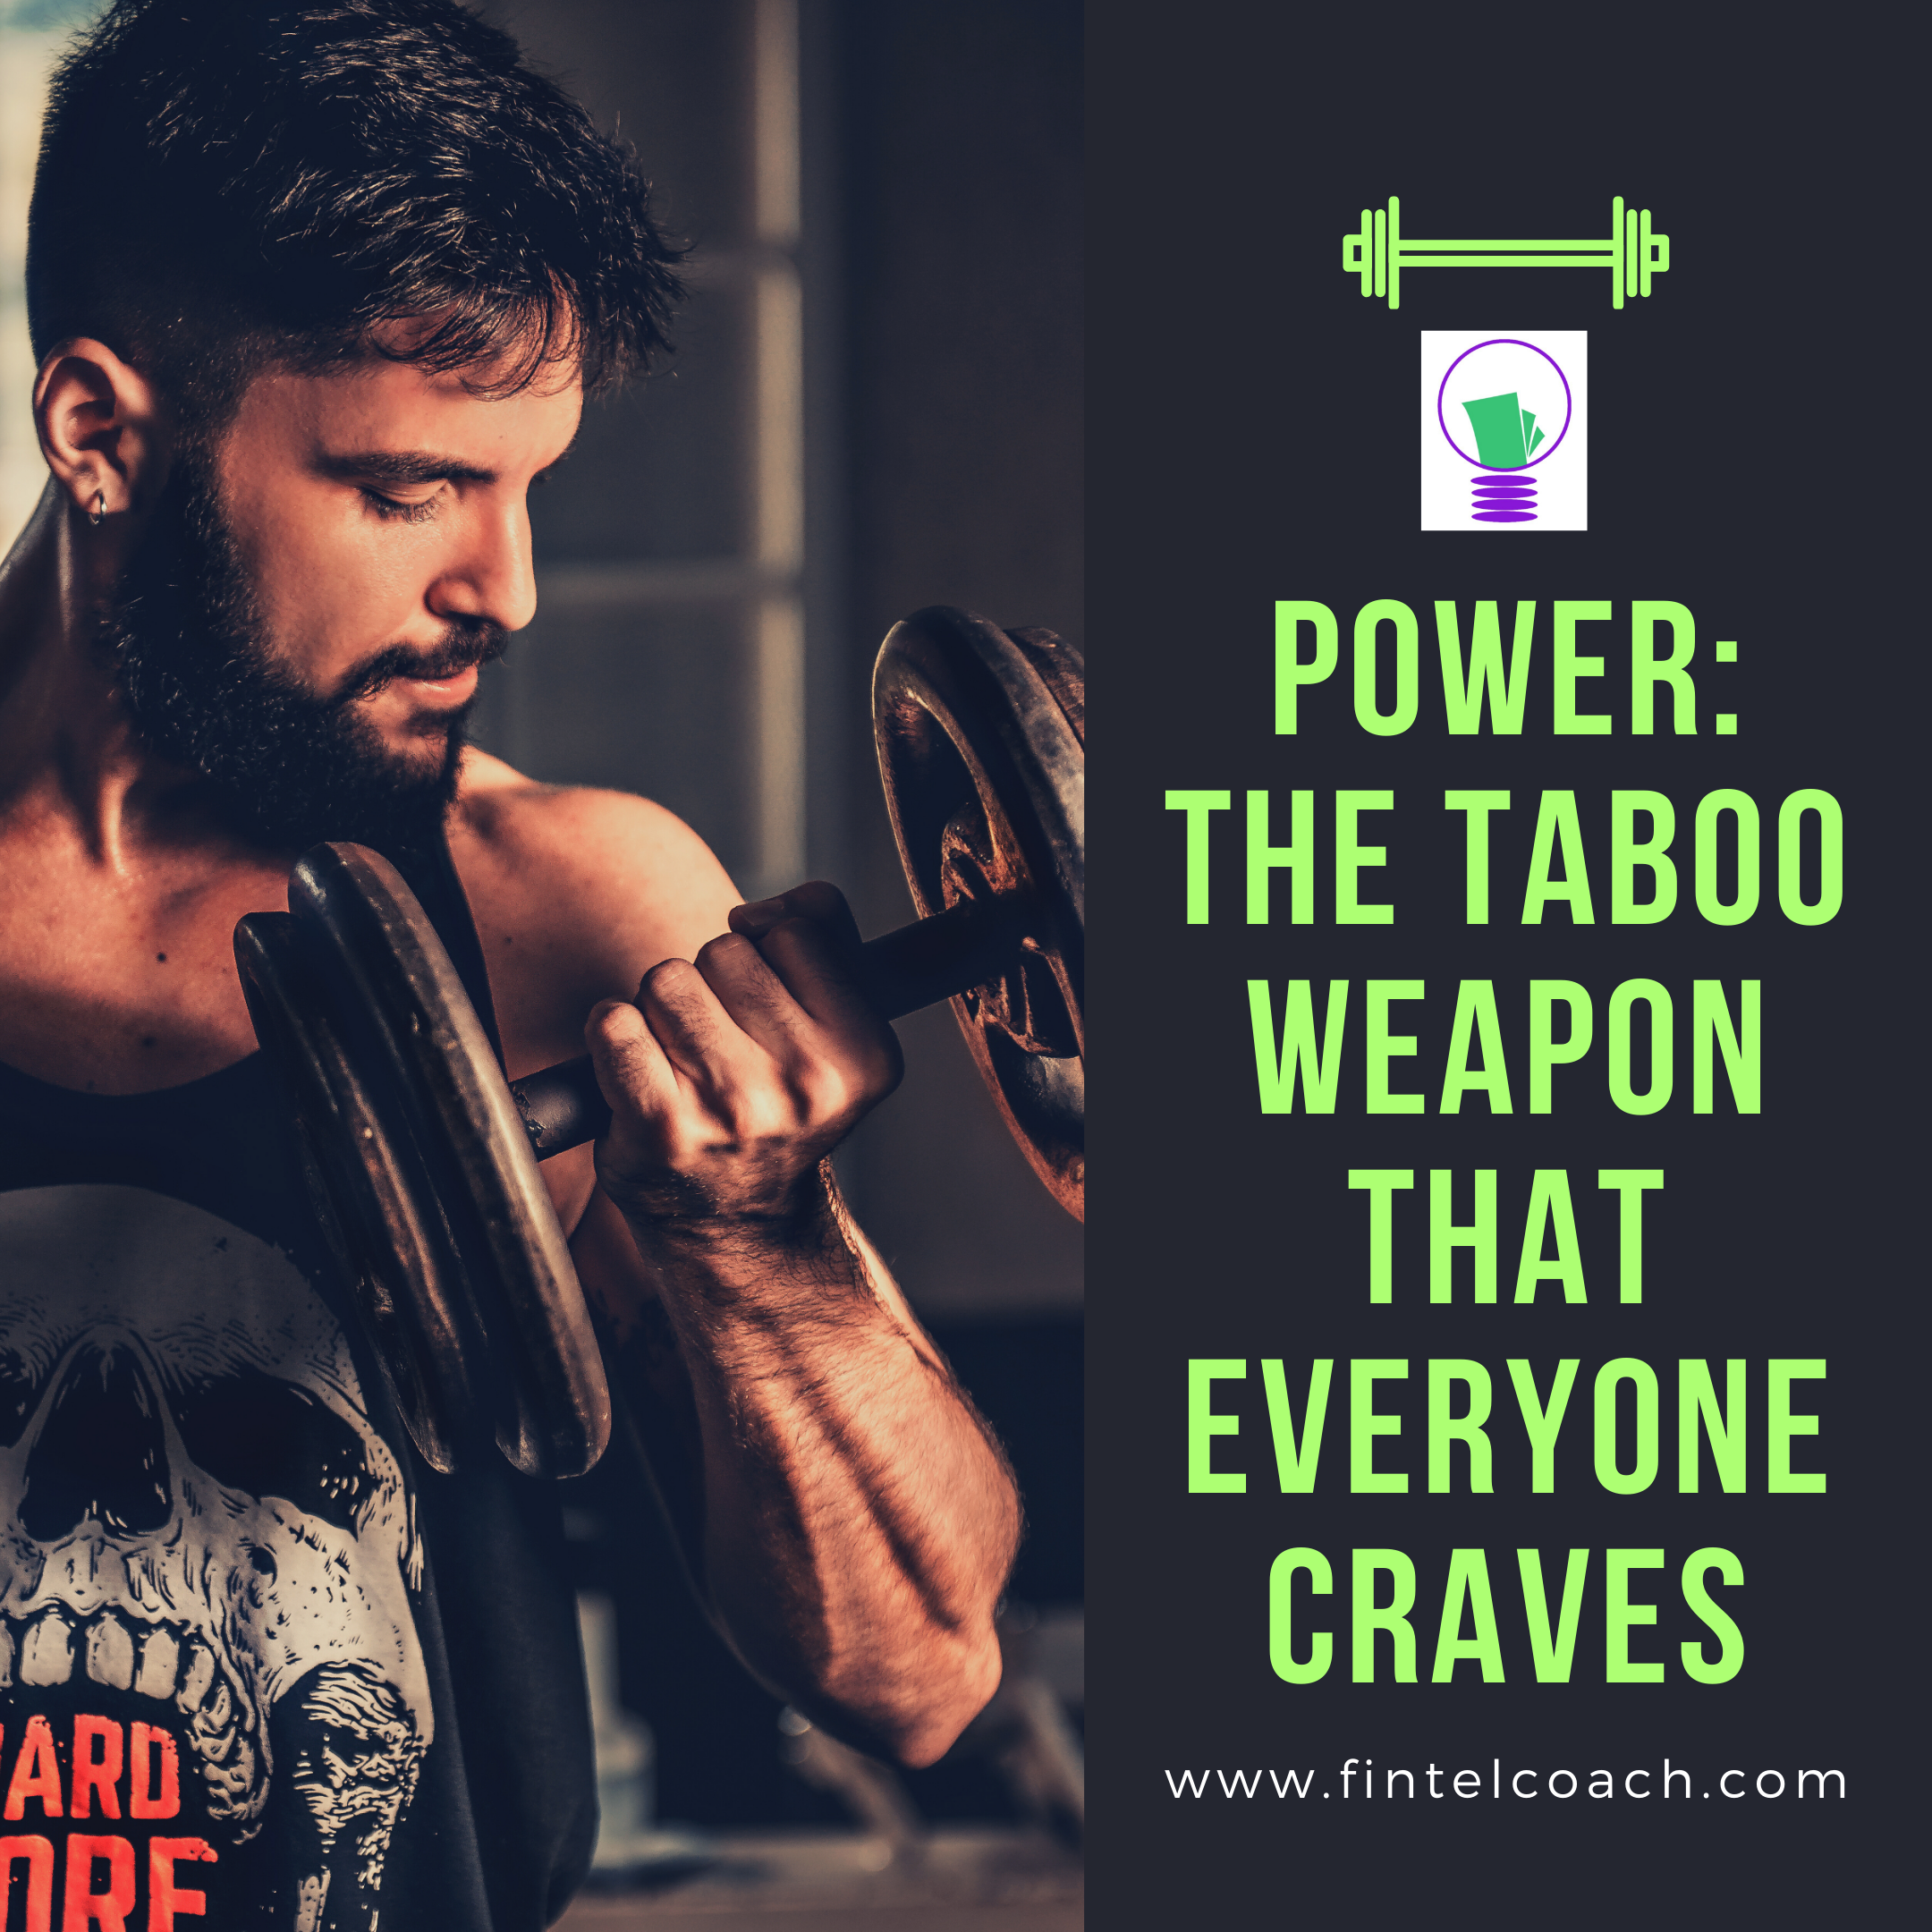 Power: The Taboo Weapon that Everyone Craves